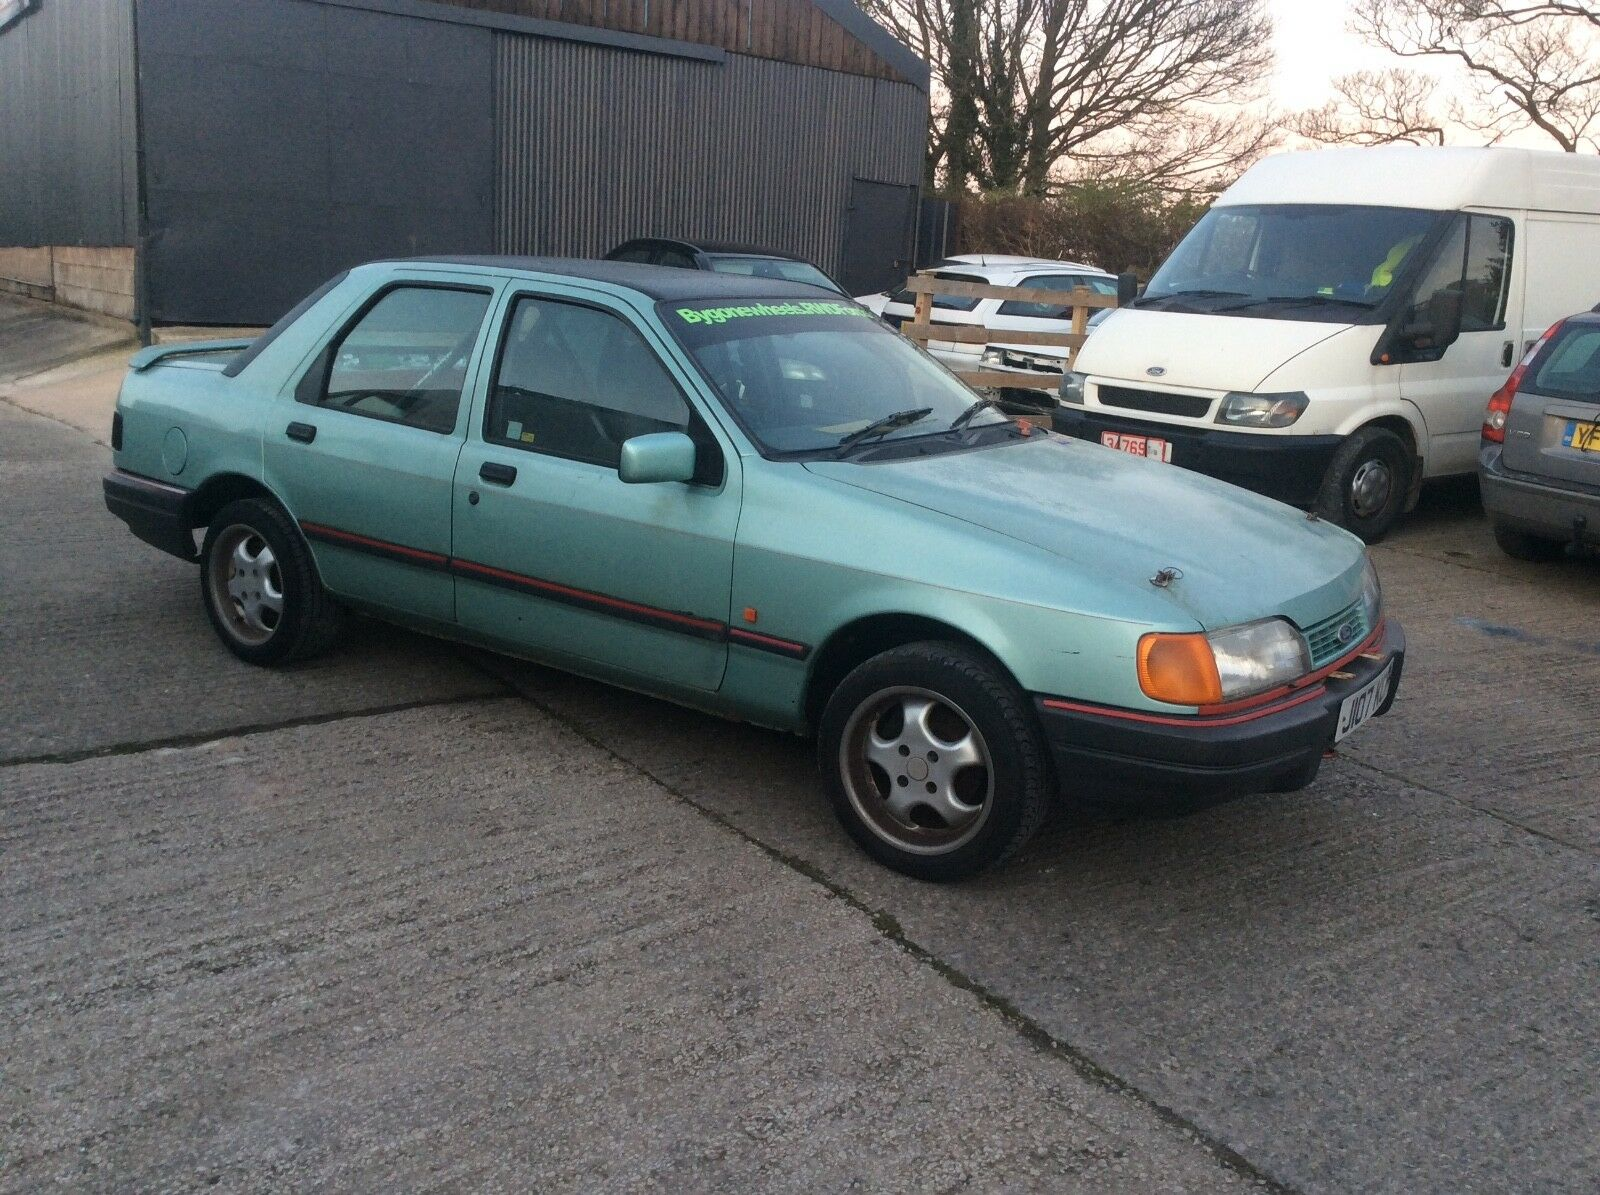 FORD sierra sapphire road rally pinto barn find - £1,995.00 ...